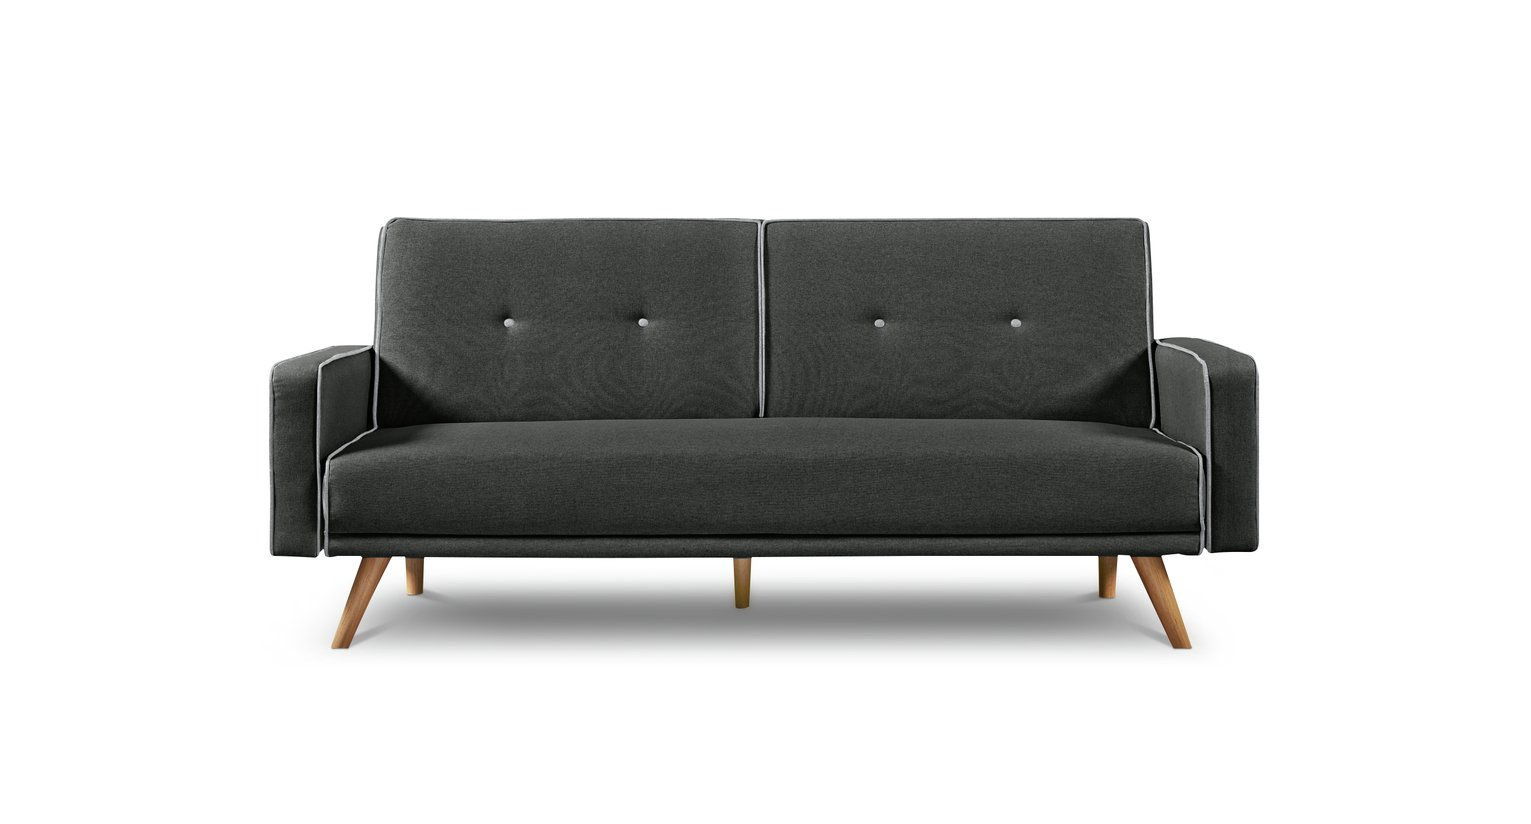 Argos Home Frankie 2 Seater Clic Clac Sofa Bed   Charcoal